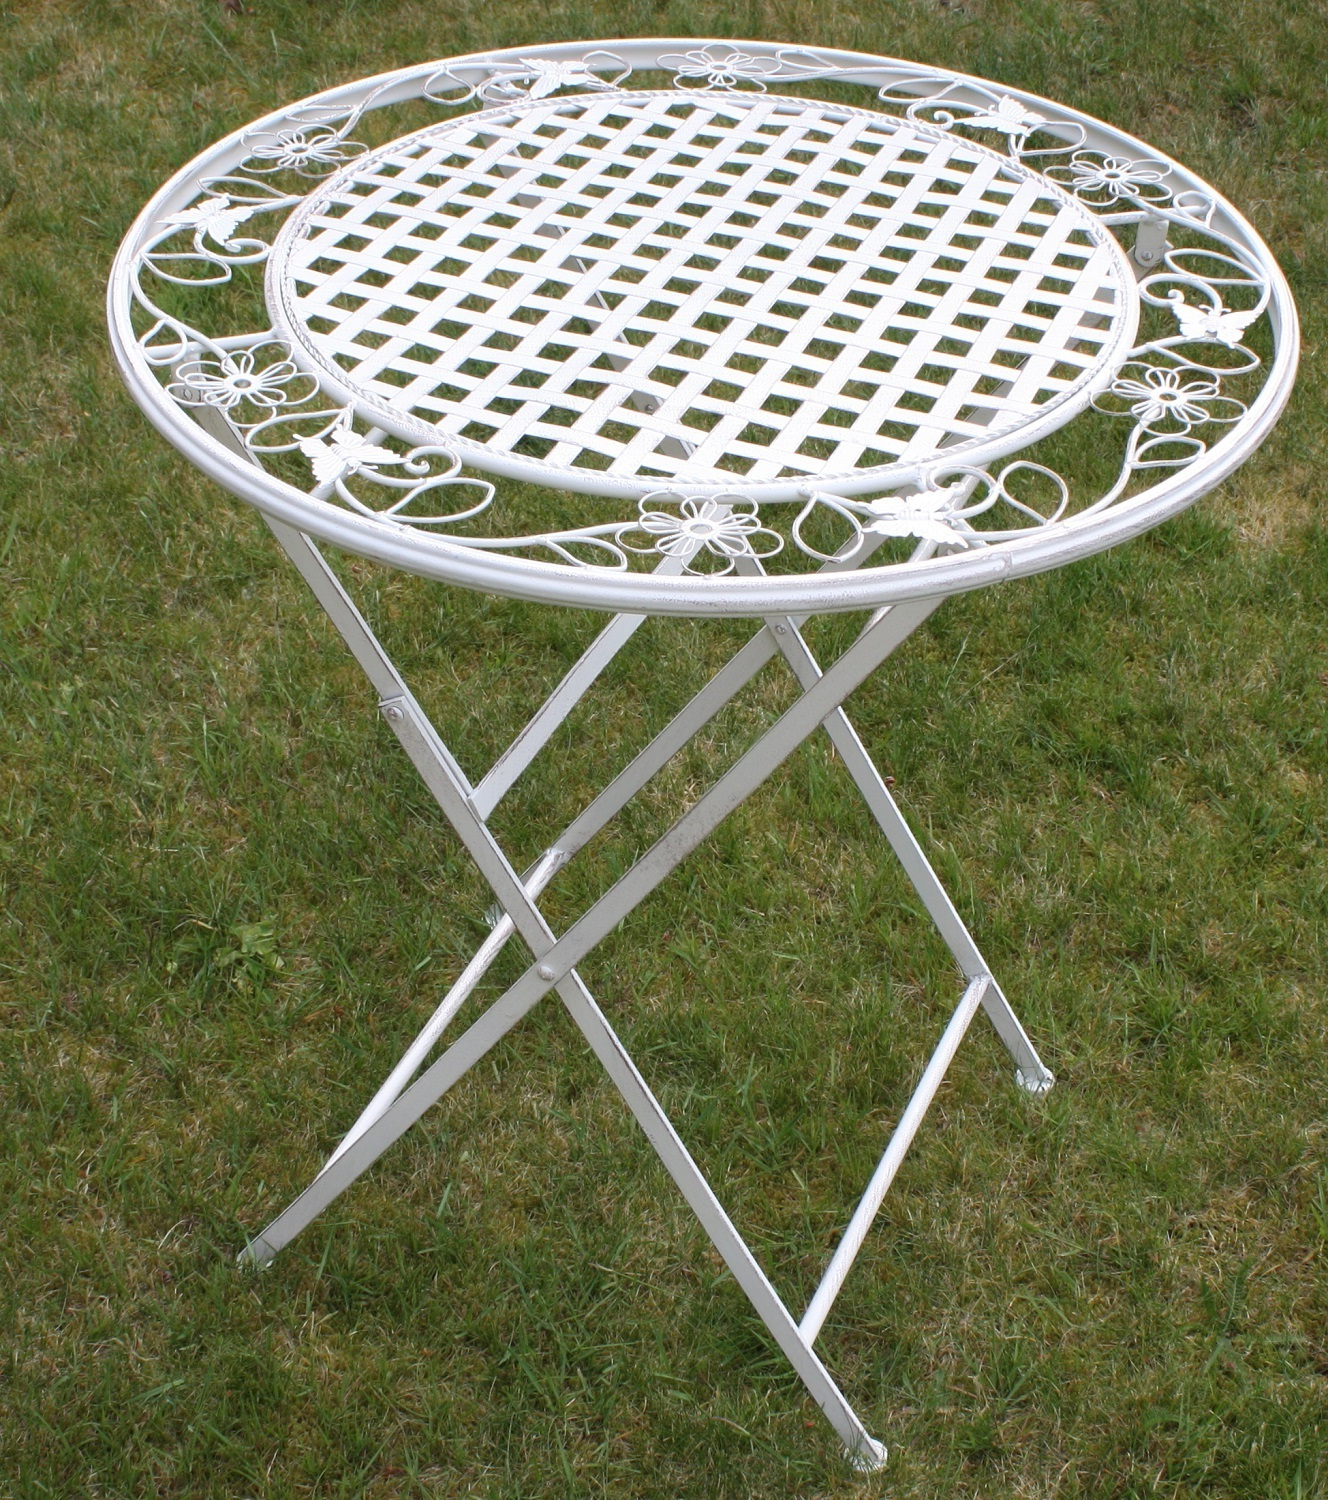 White Floral Outdoor Folding Metal Garden Dining Table Patio Furniture Set Ebay